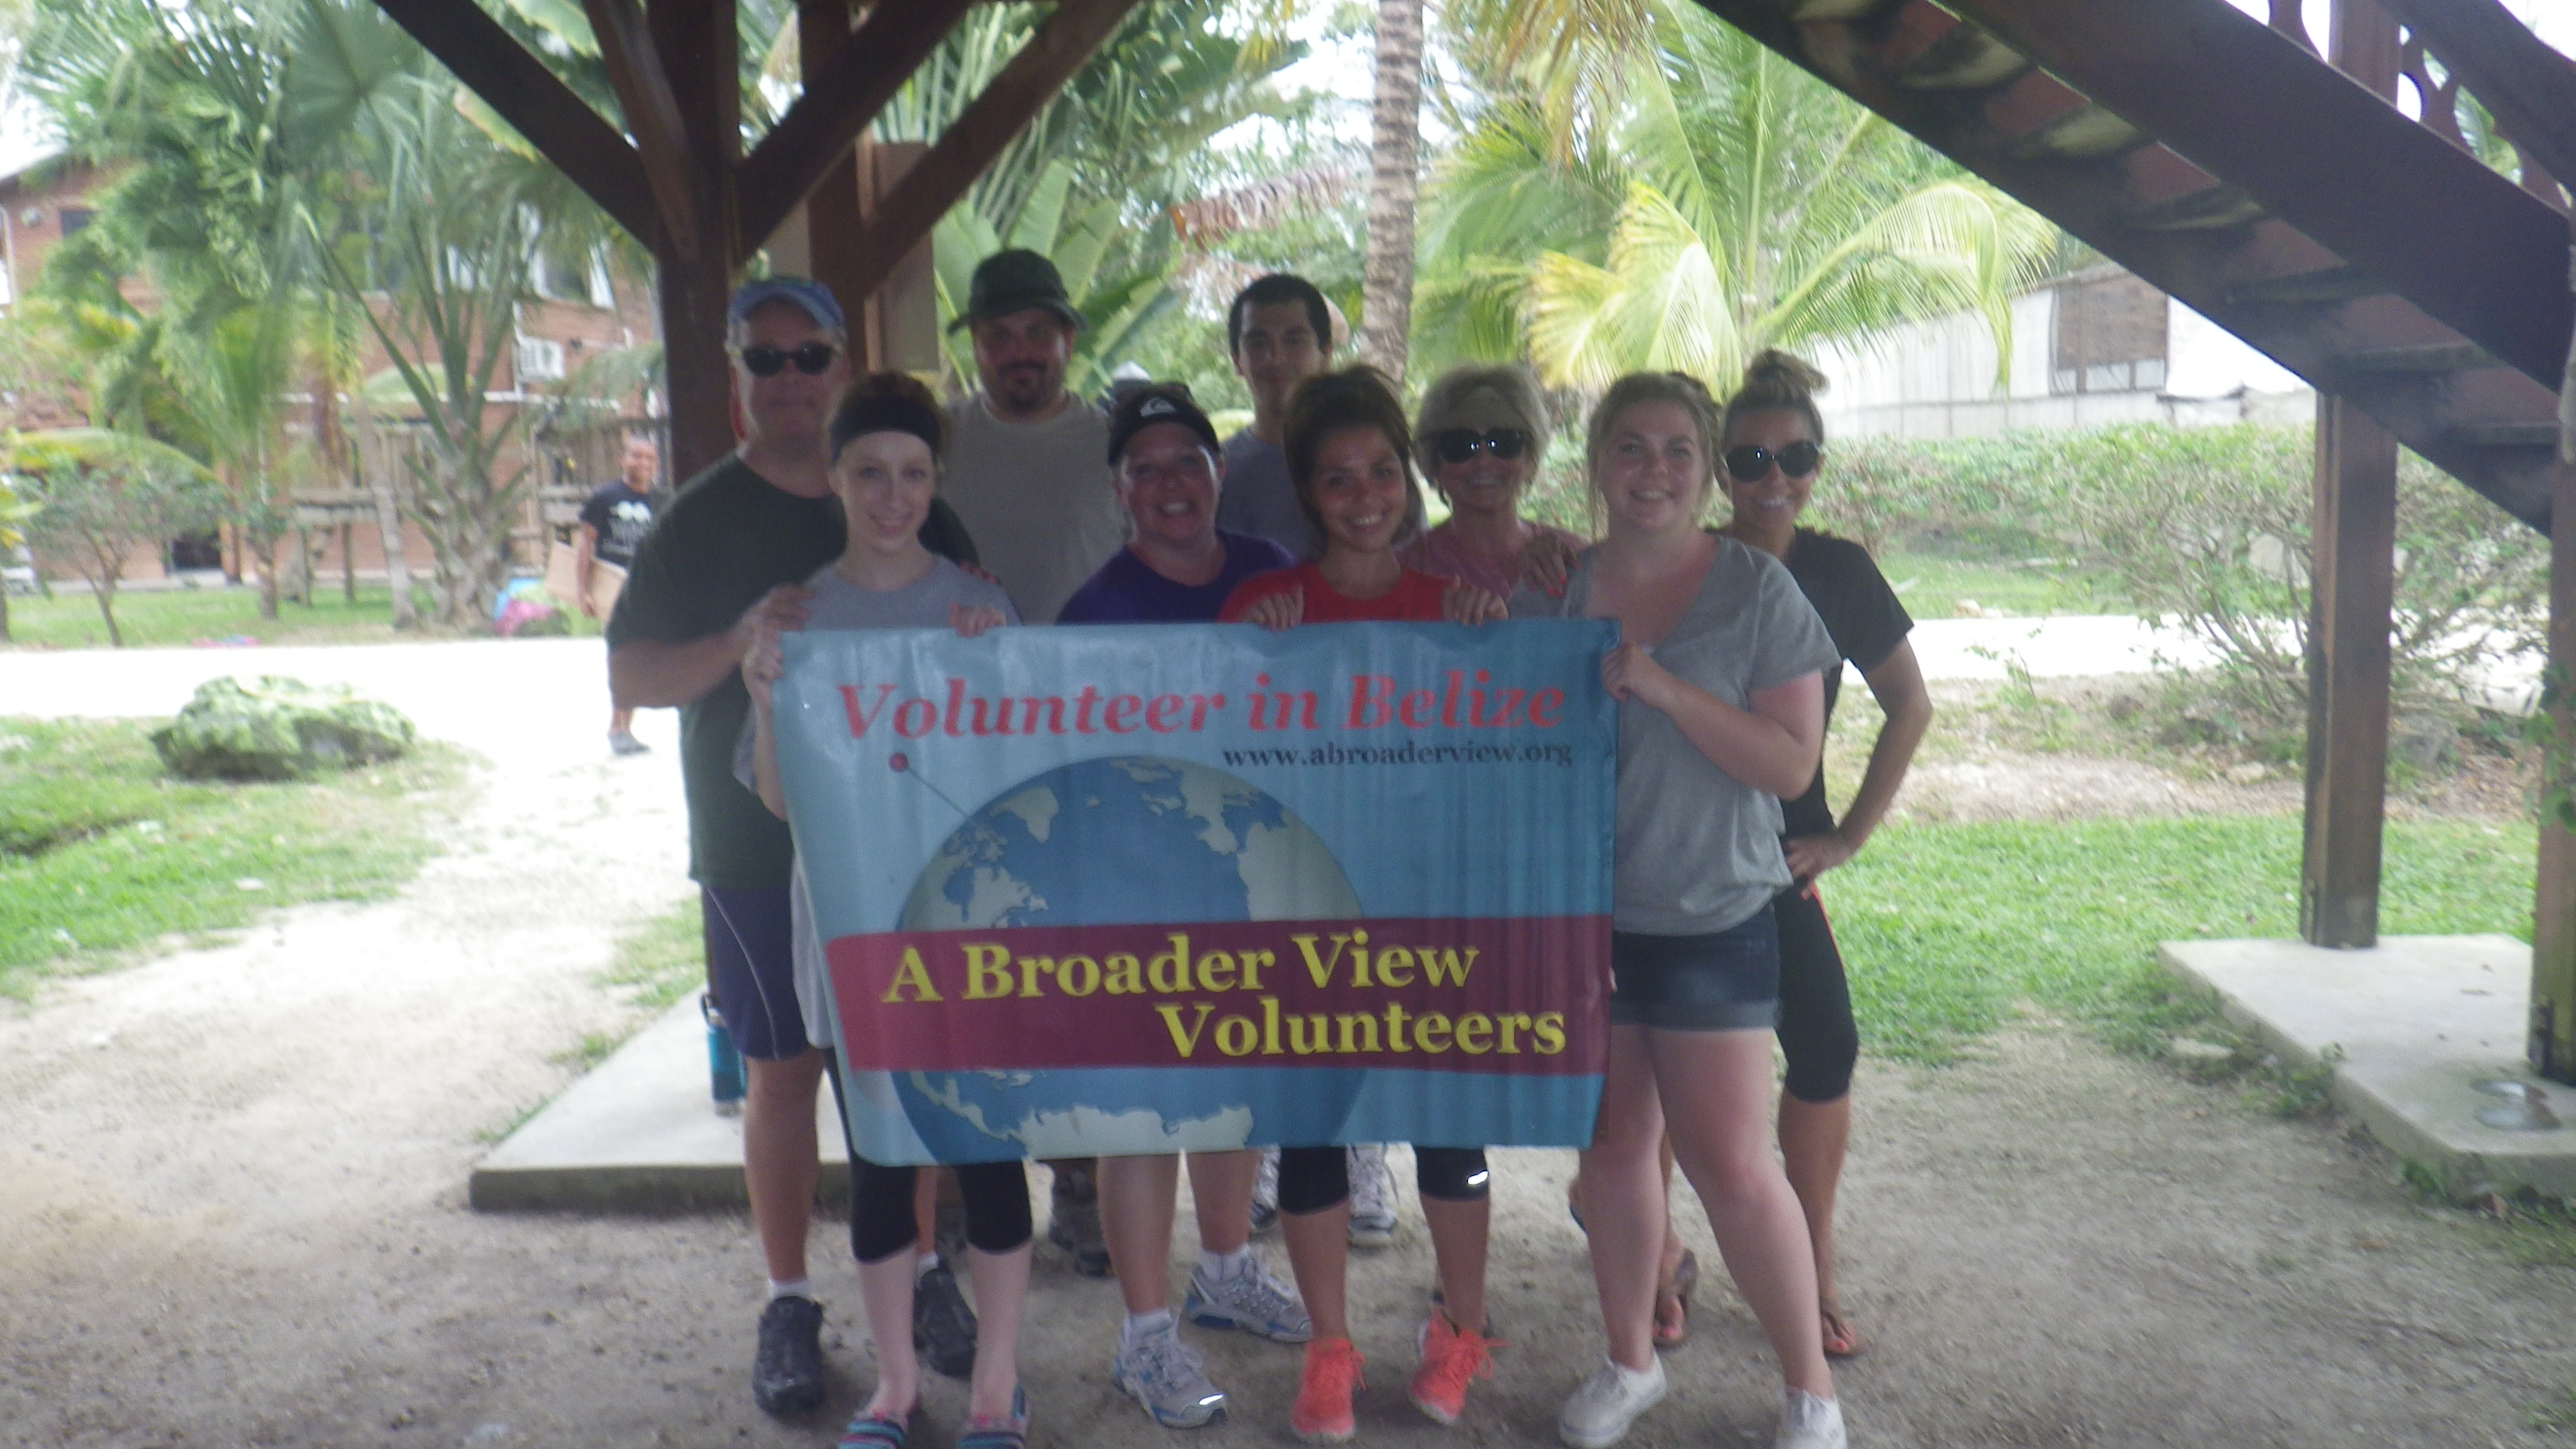 Summer Program - Youth Outreach   Volunteer in BELIZE - Orphanage and Teaching Program with A Broader View Volunteers